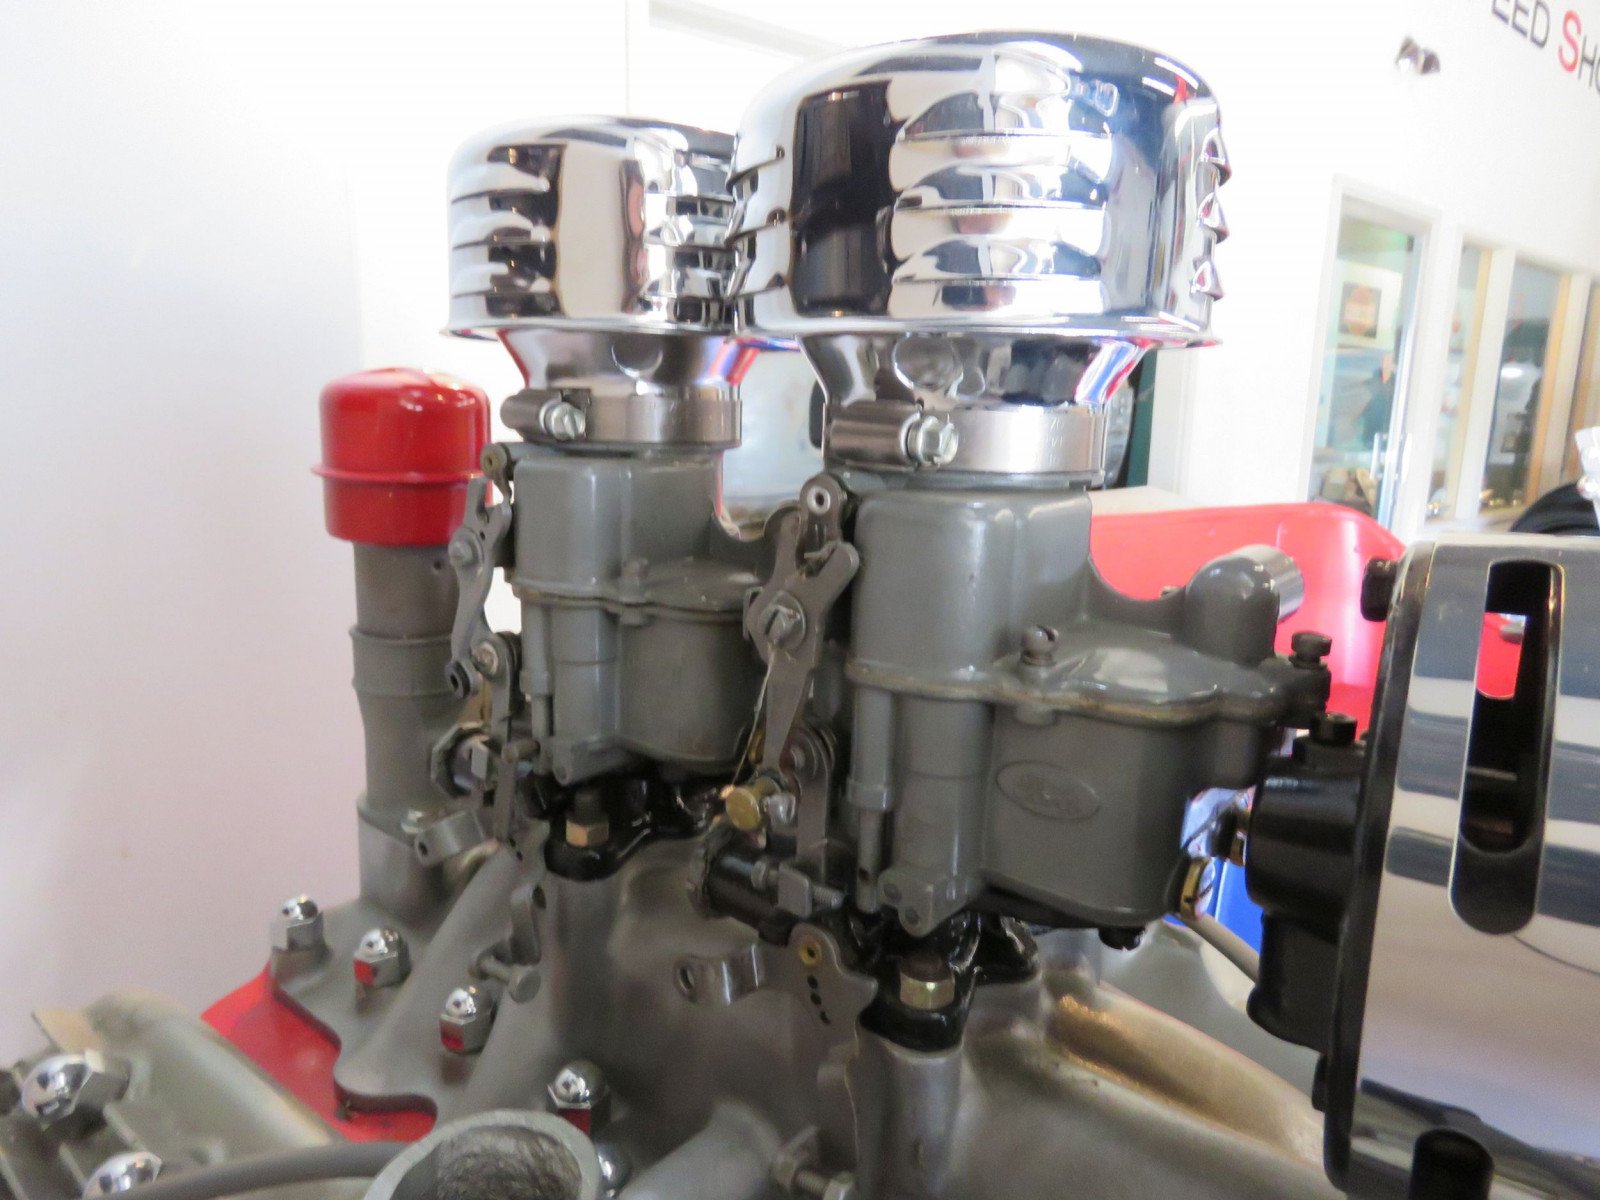 Ford Flathead V8 on stand - Image 8